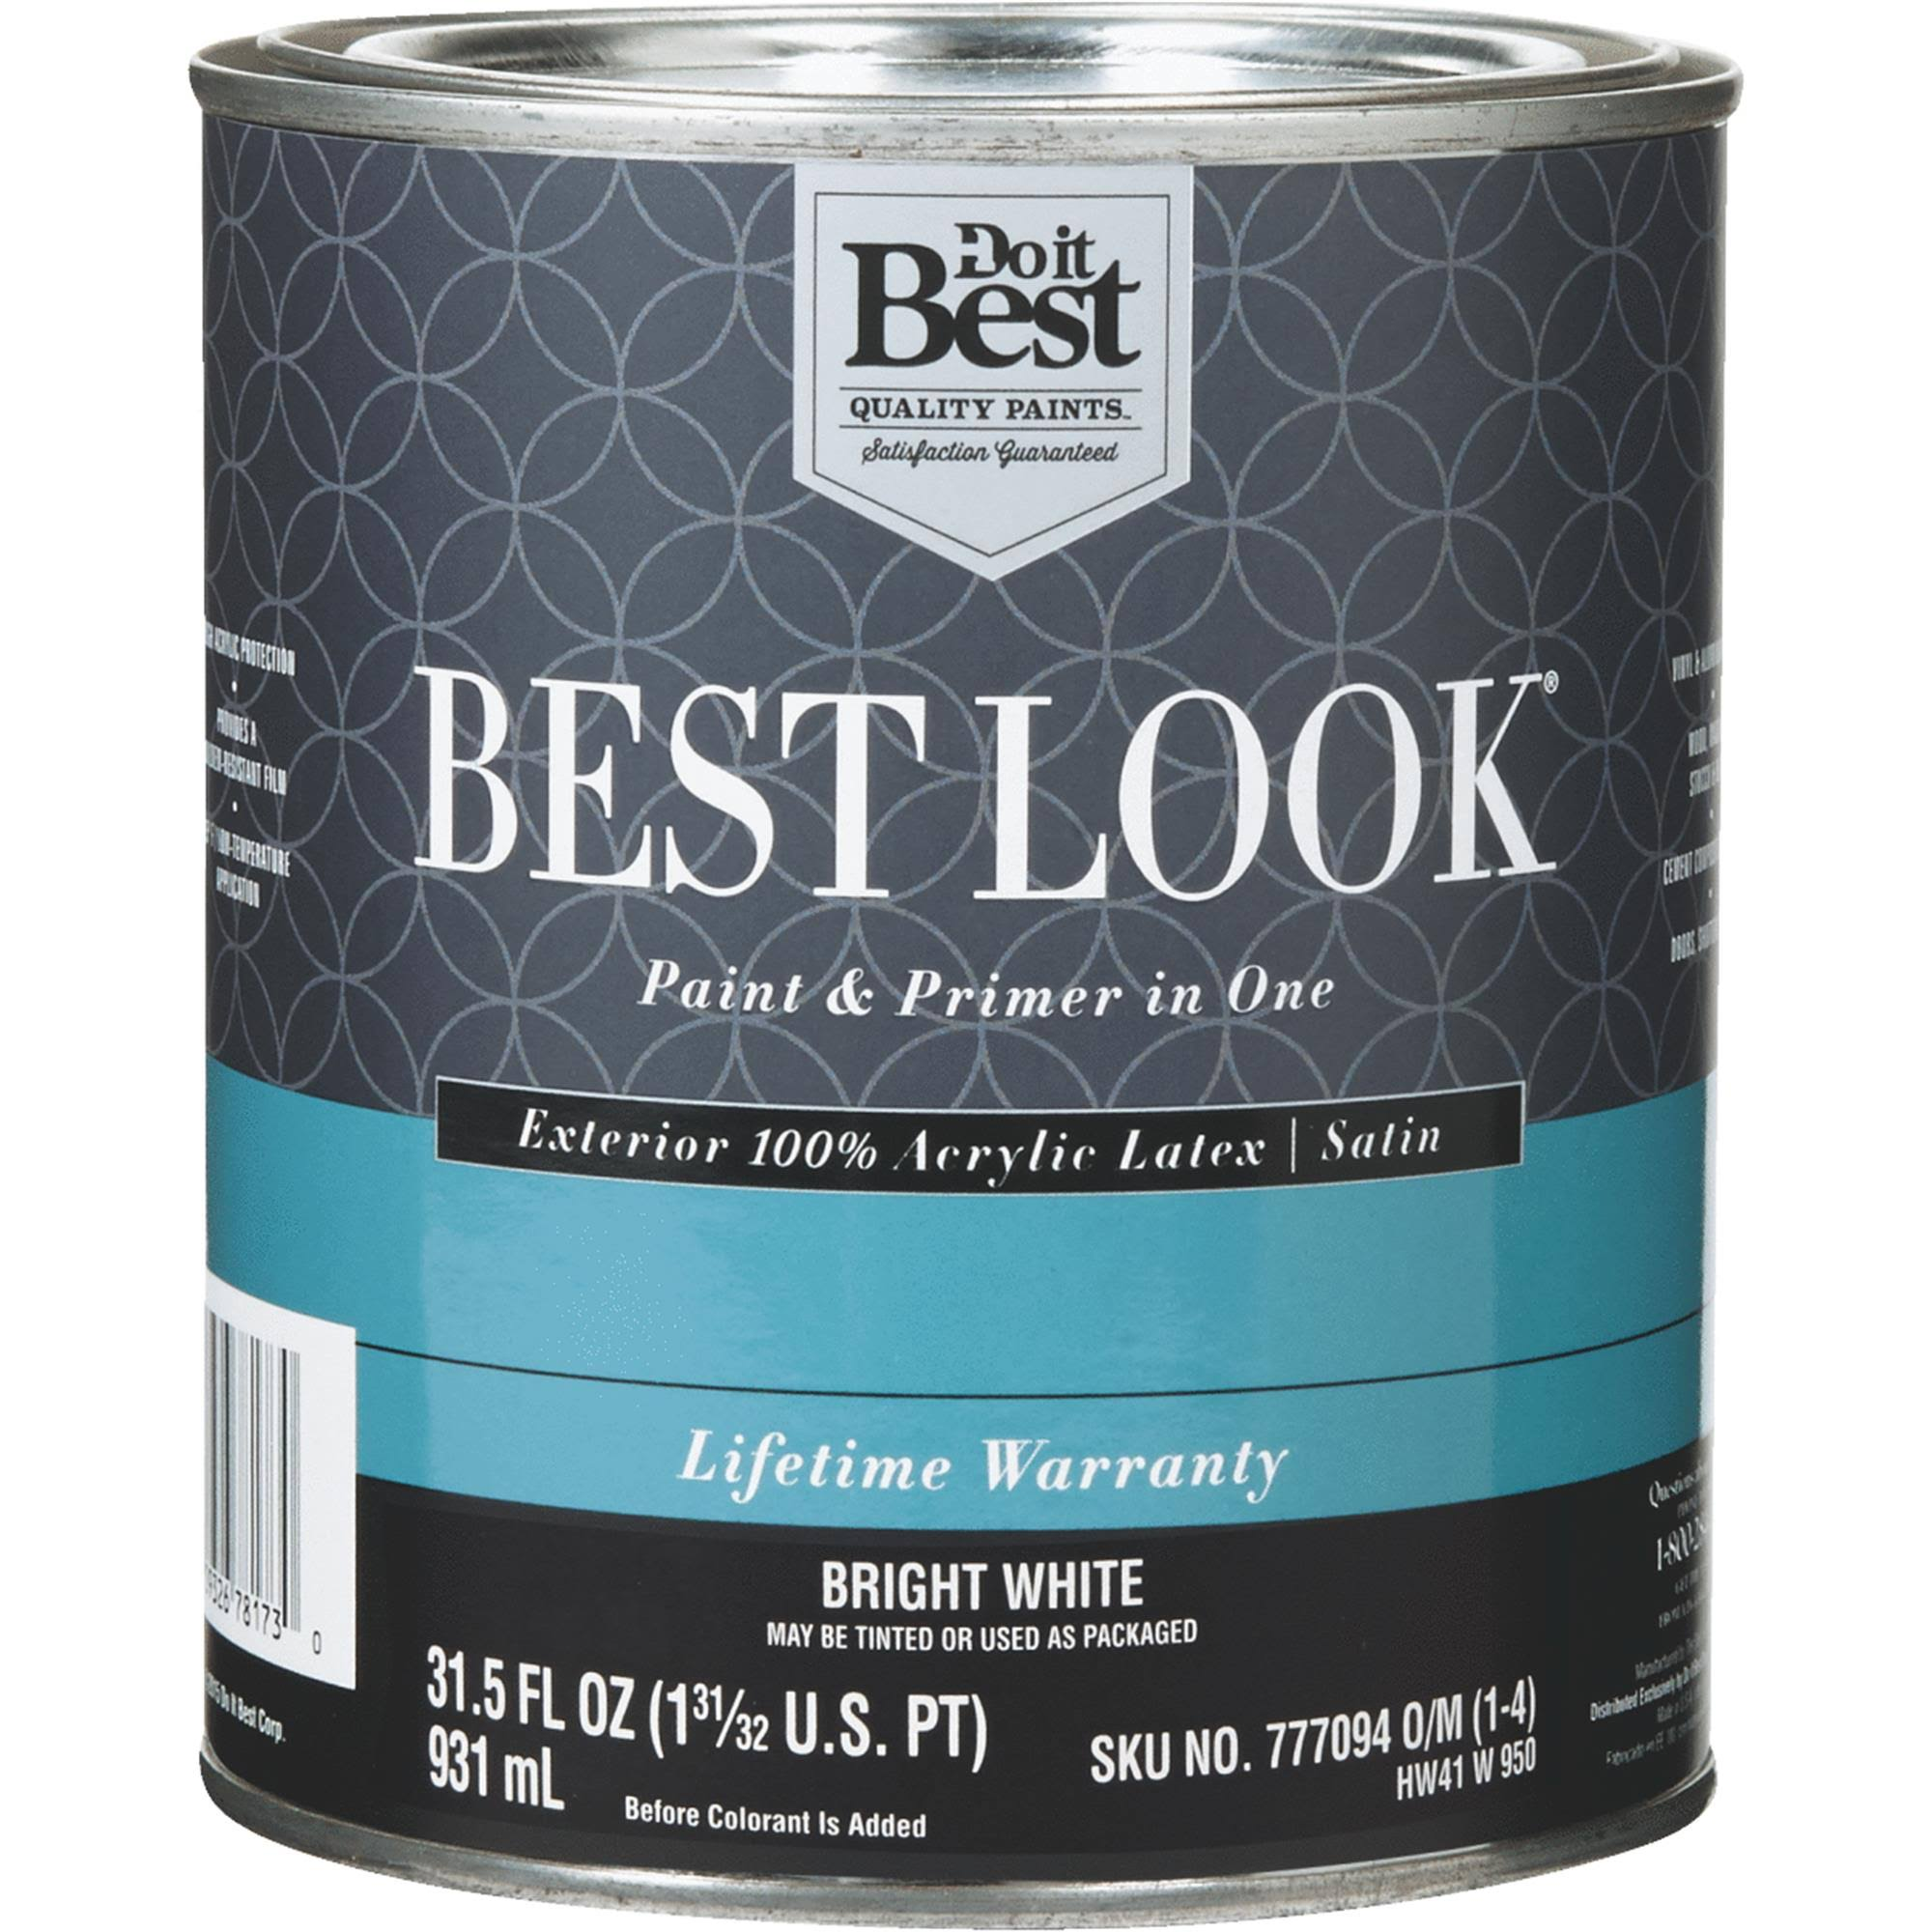 - HW41W0950-14 Best Look 100% Acrylic Latex Paint & Primer in One Satin Exterior House Paint